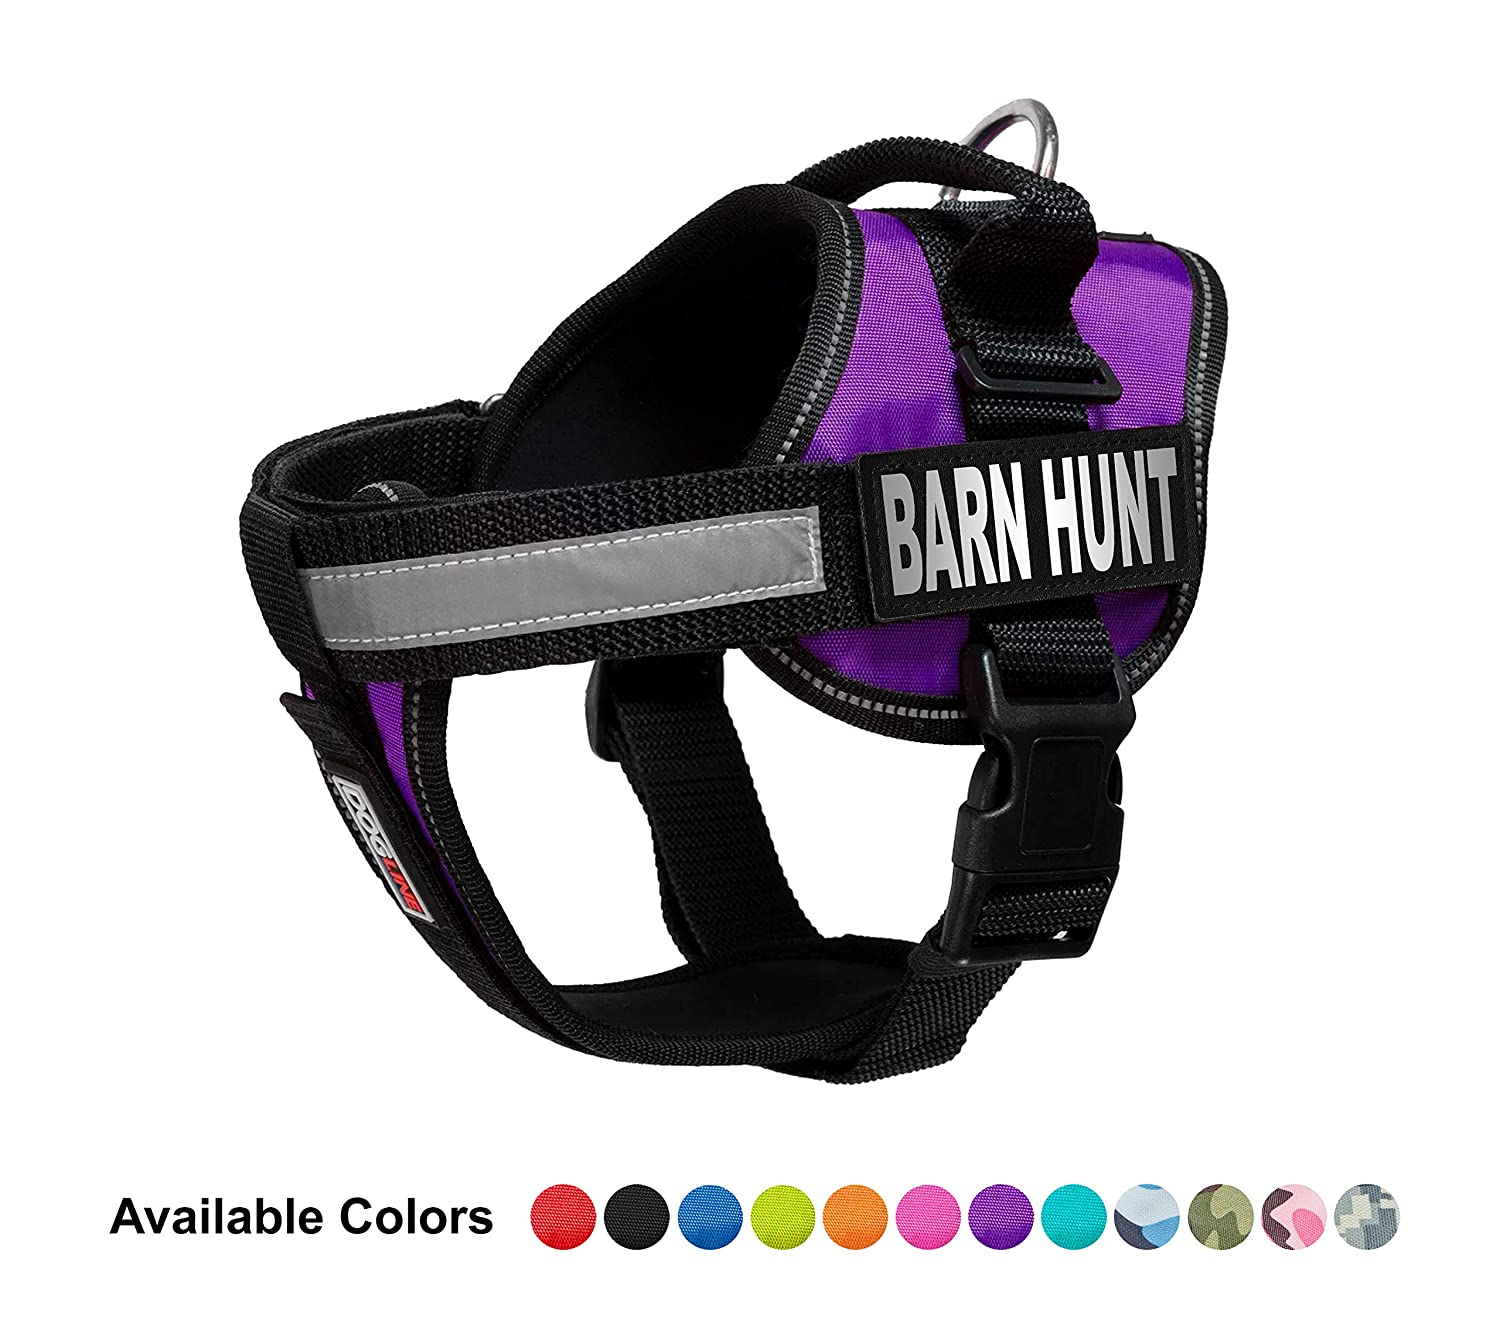 Dogline Vest Harness for Dogs and 2 Removable Barn Hunt Patches, X-Large 36 to 46 , Purple